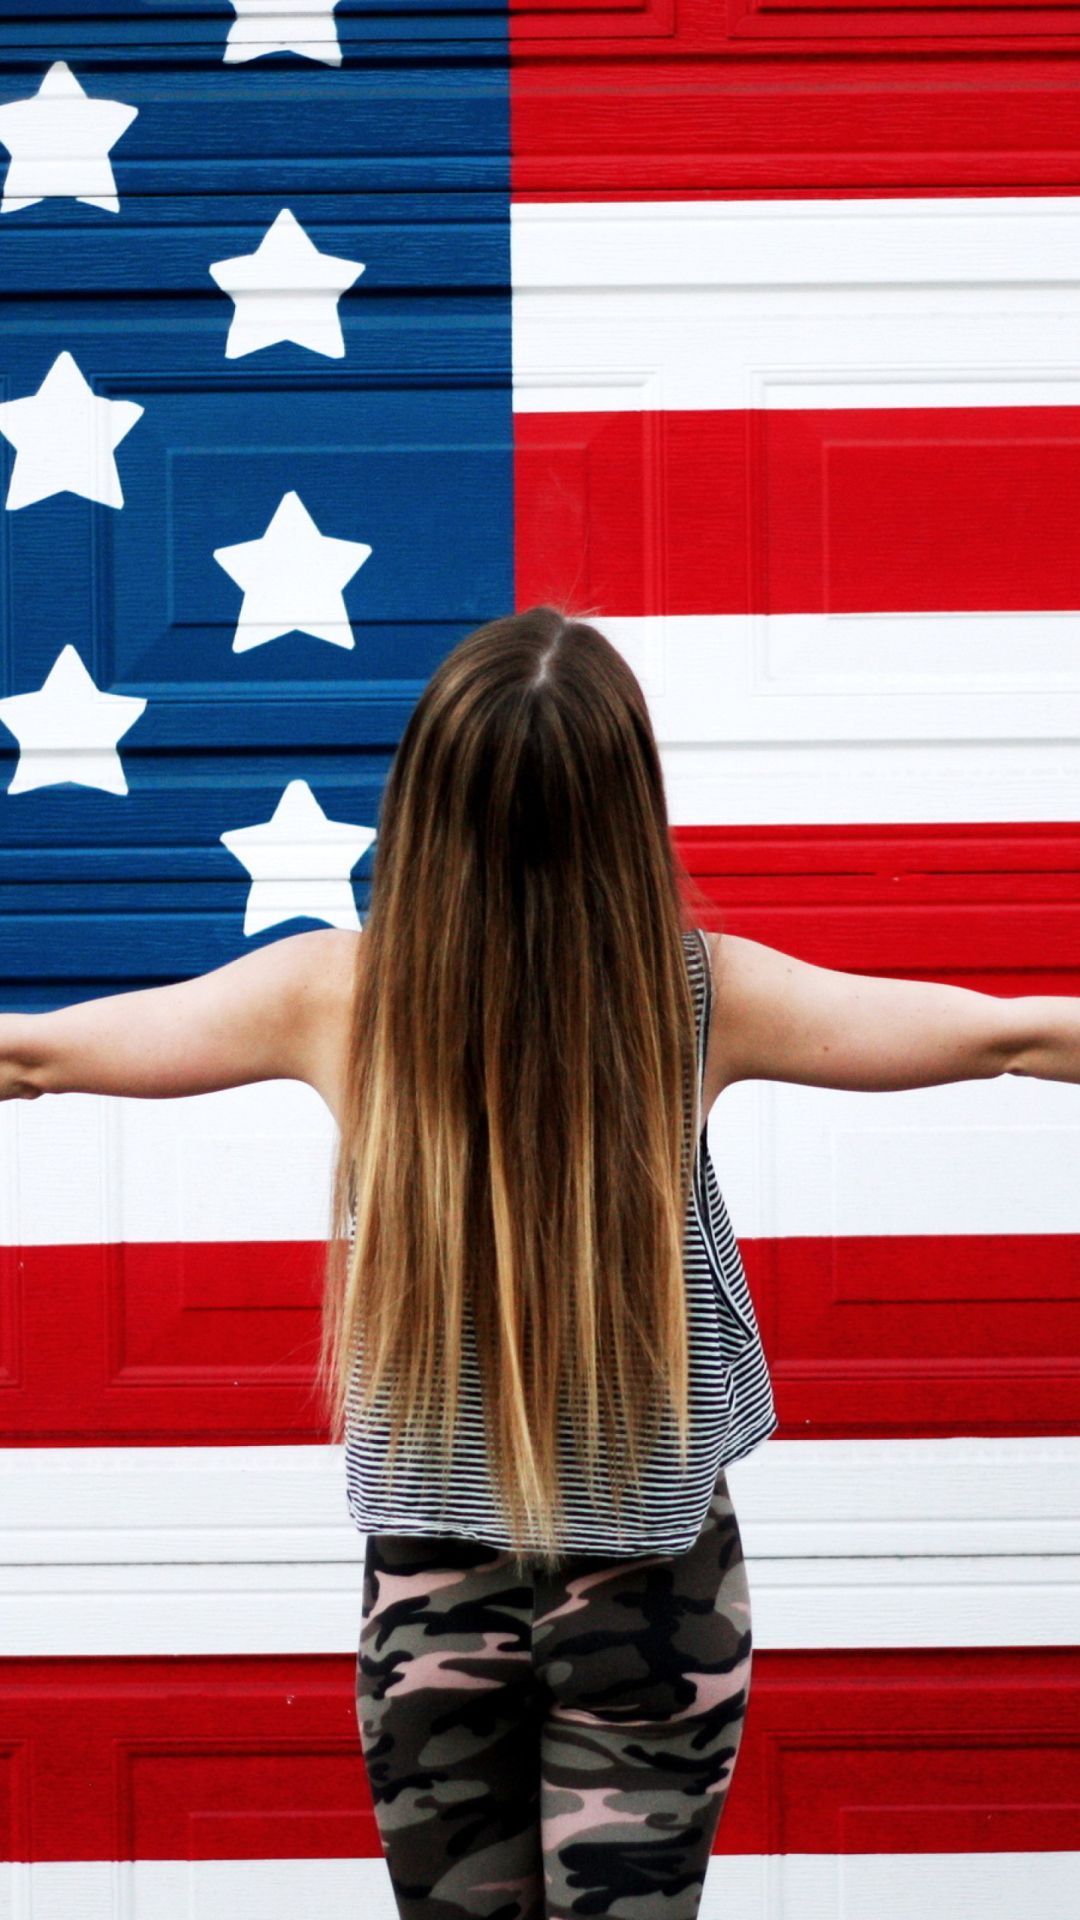 American Girl In Front Of USA Flag United States of America 1080x1920